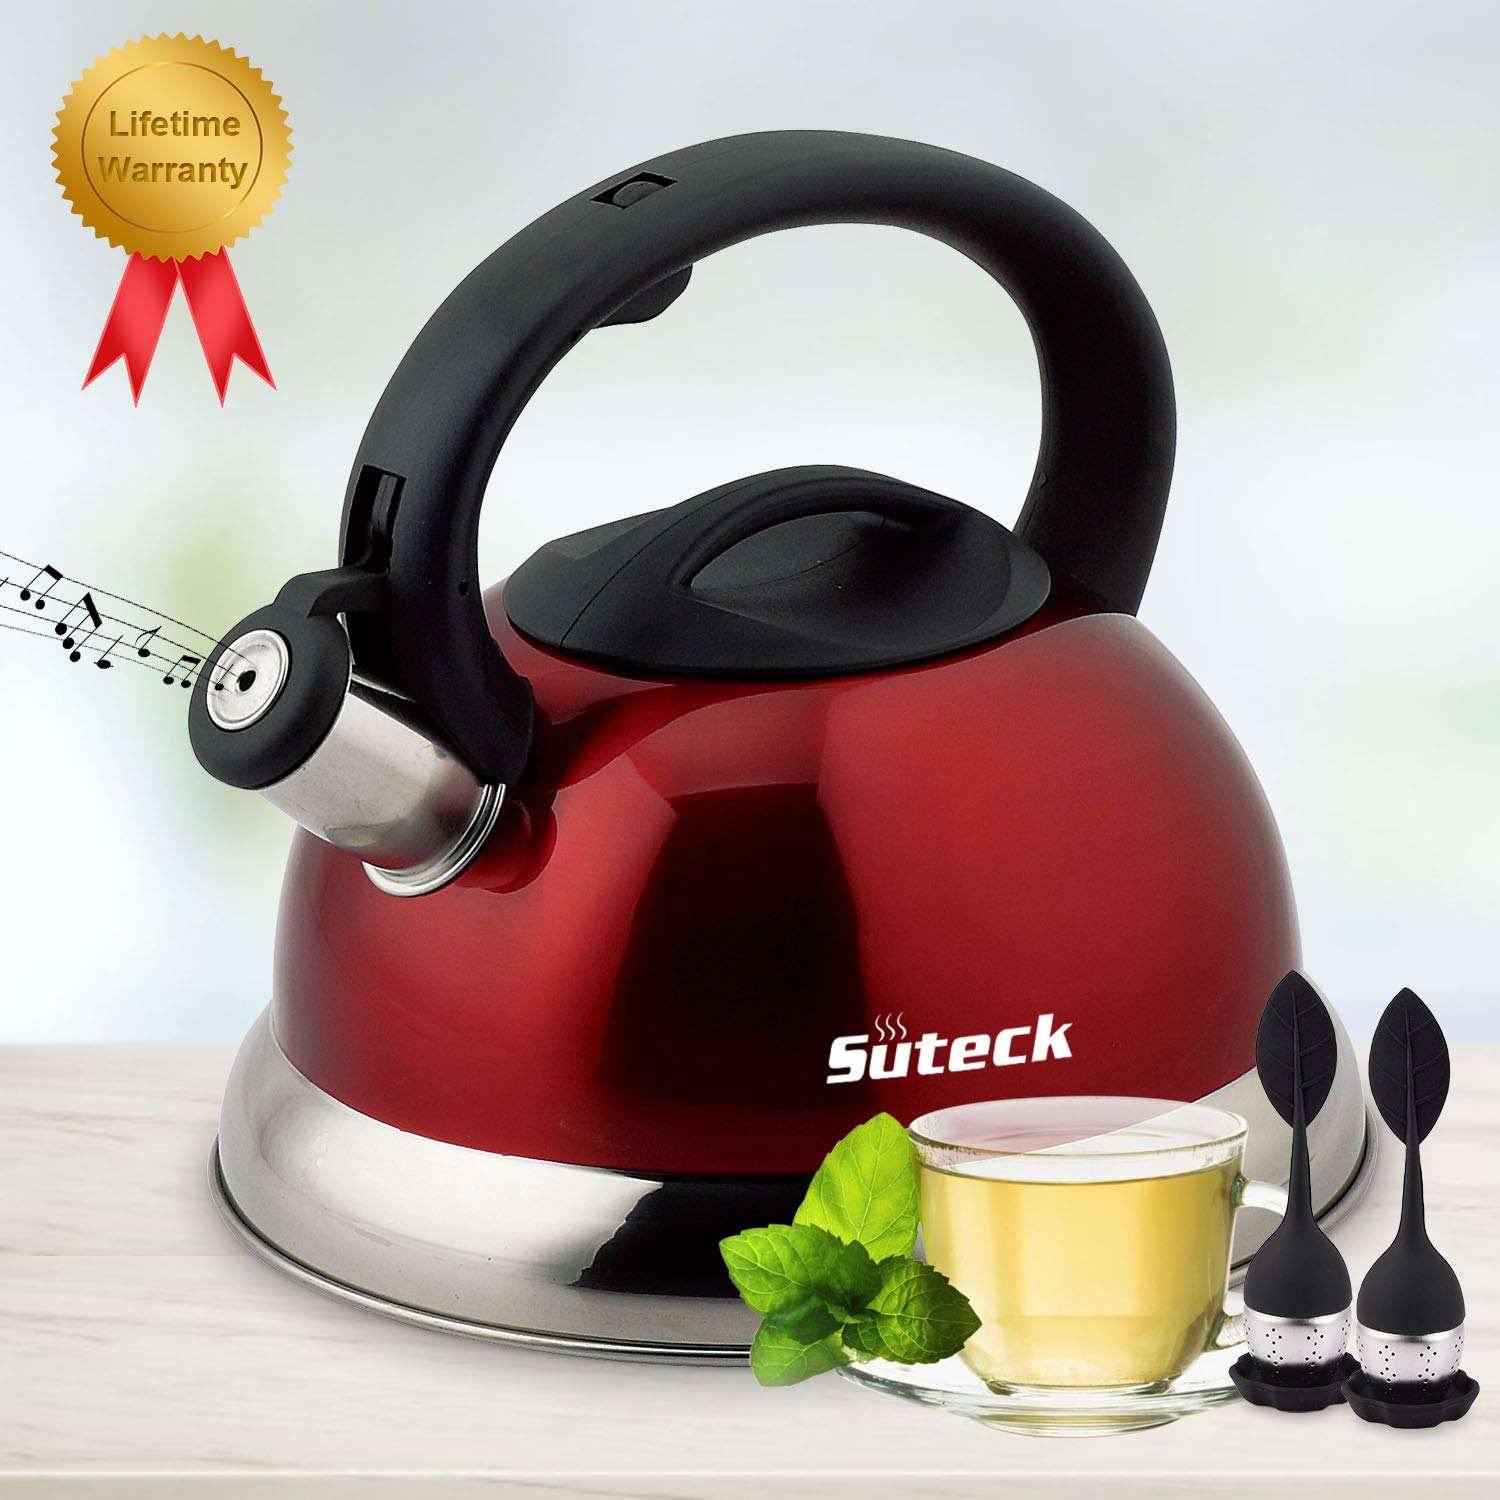 Tea Kettle Whistling Tea Pot 3.3 Qt Stainless Steel Hot Water Teapot for ALL Stovetops 2 FREE Infusers Included